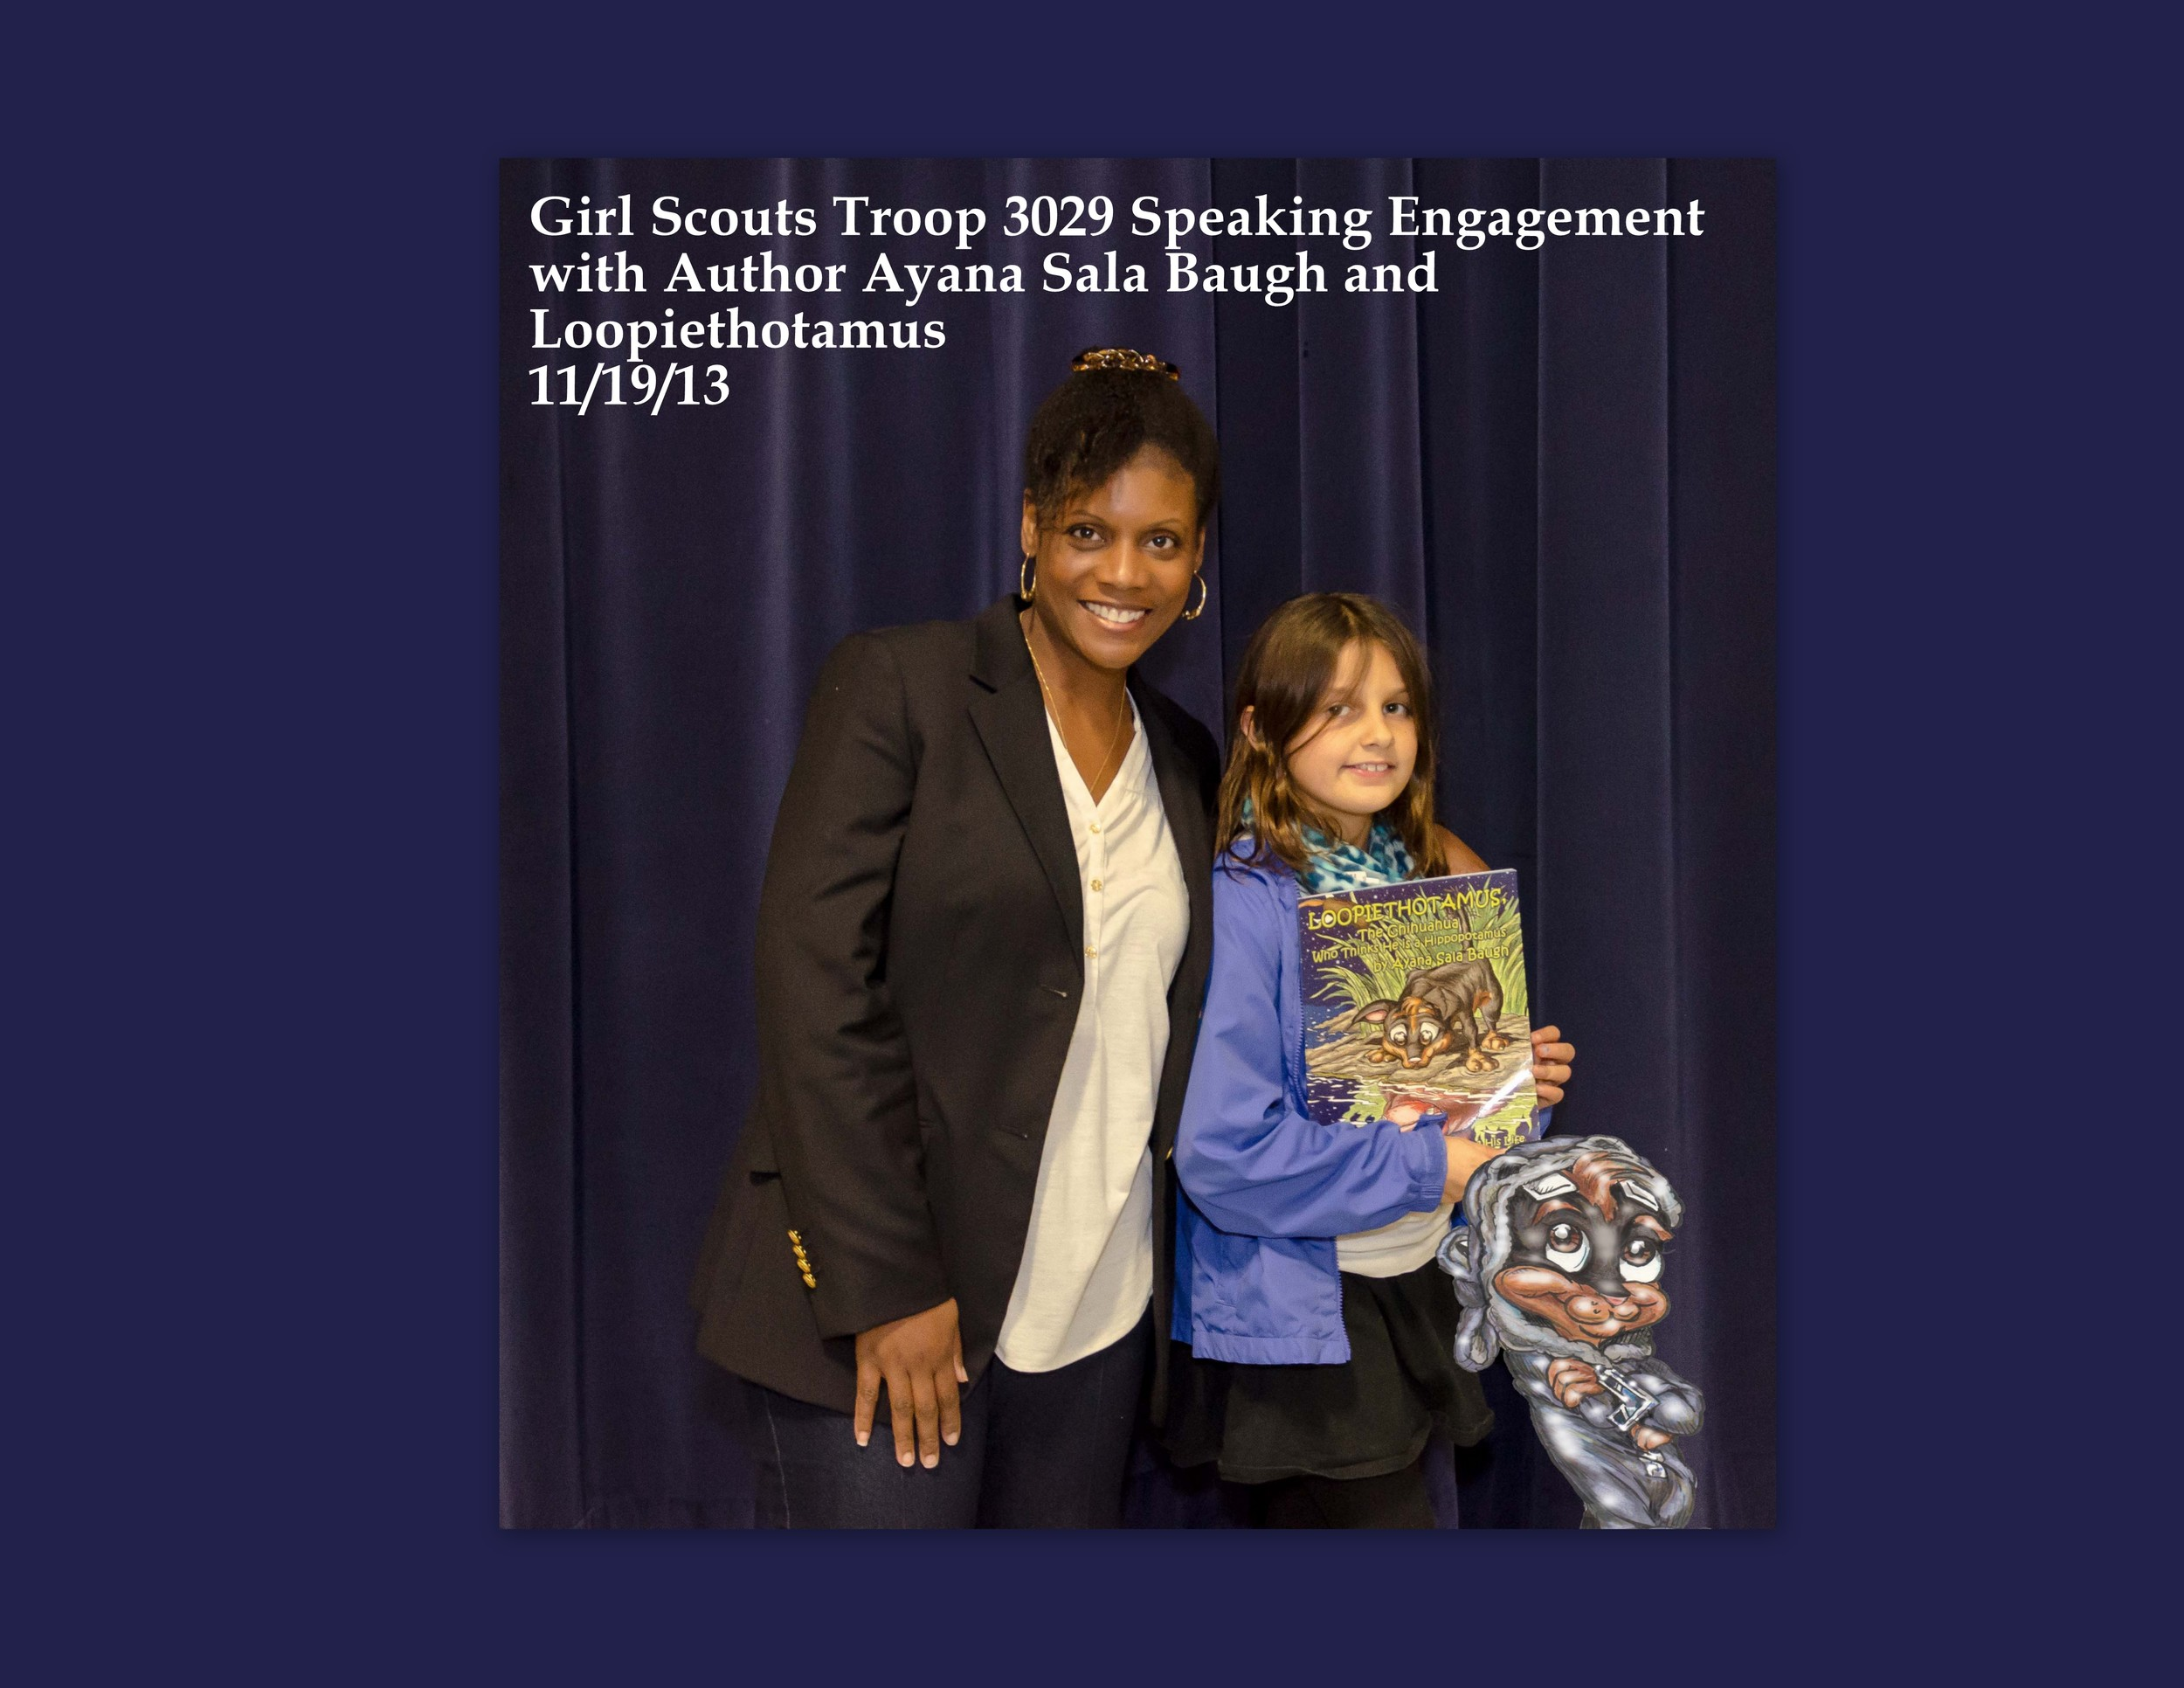 Speaking Engagement with Girl Scouts Troop 3029 111913.jpg